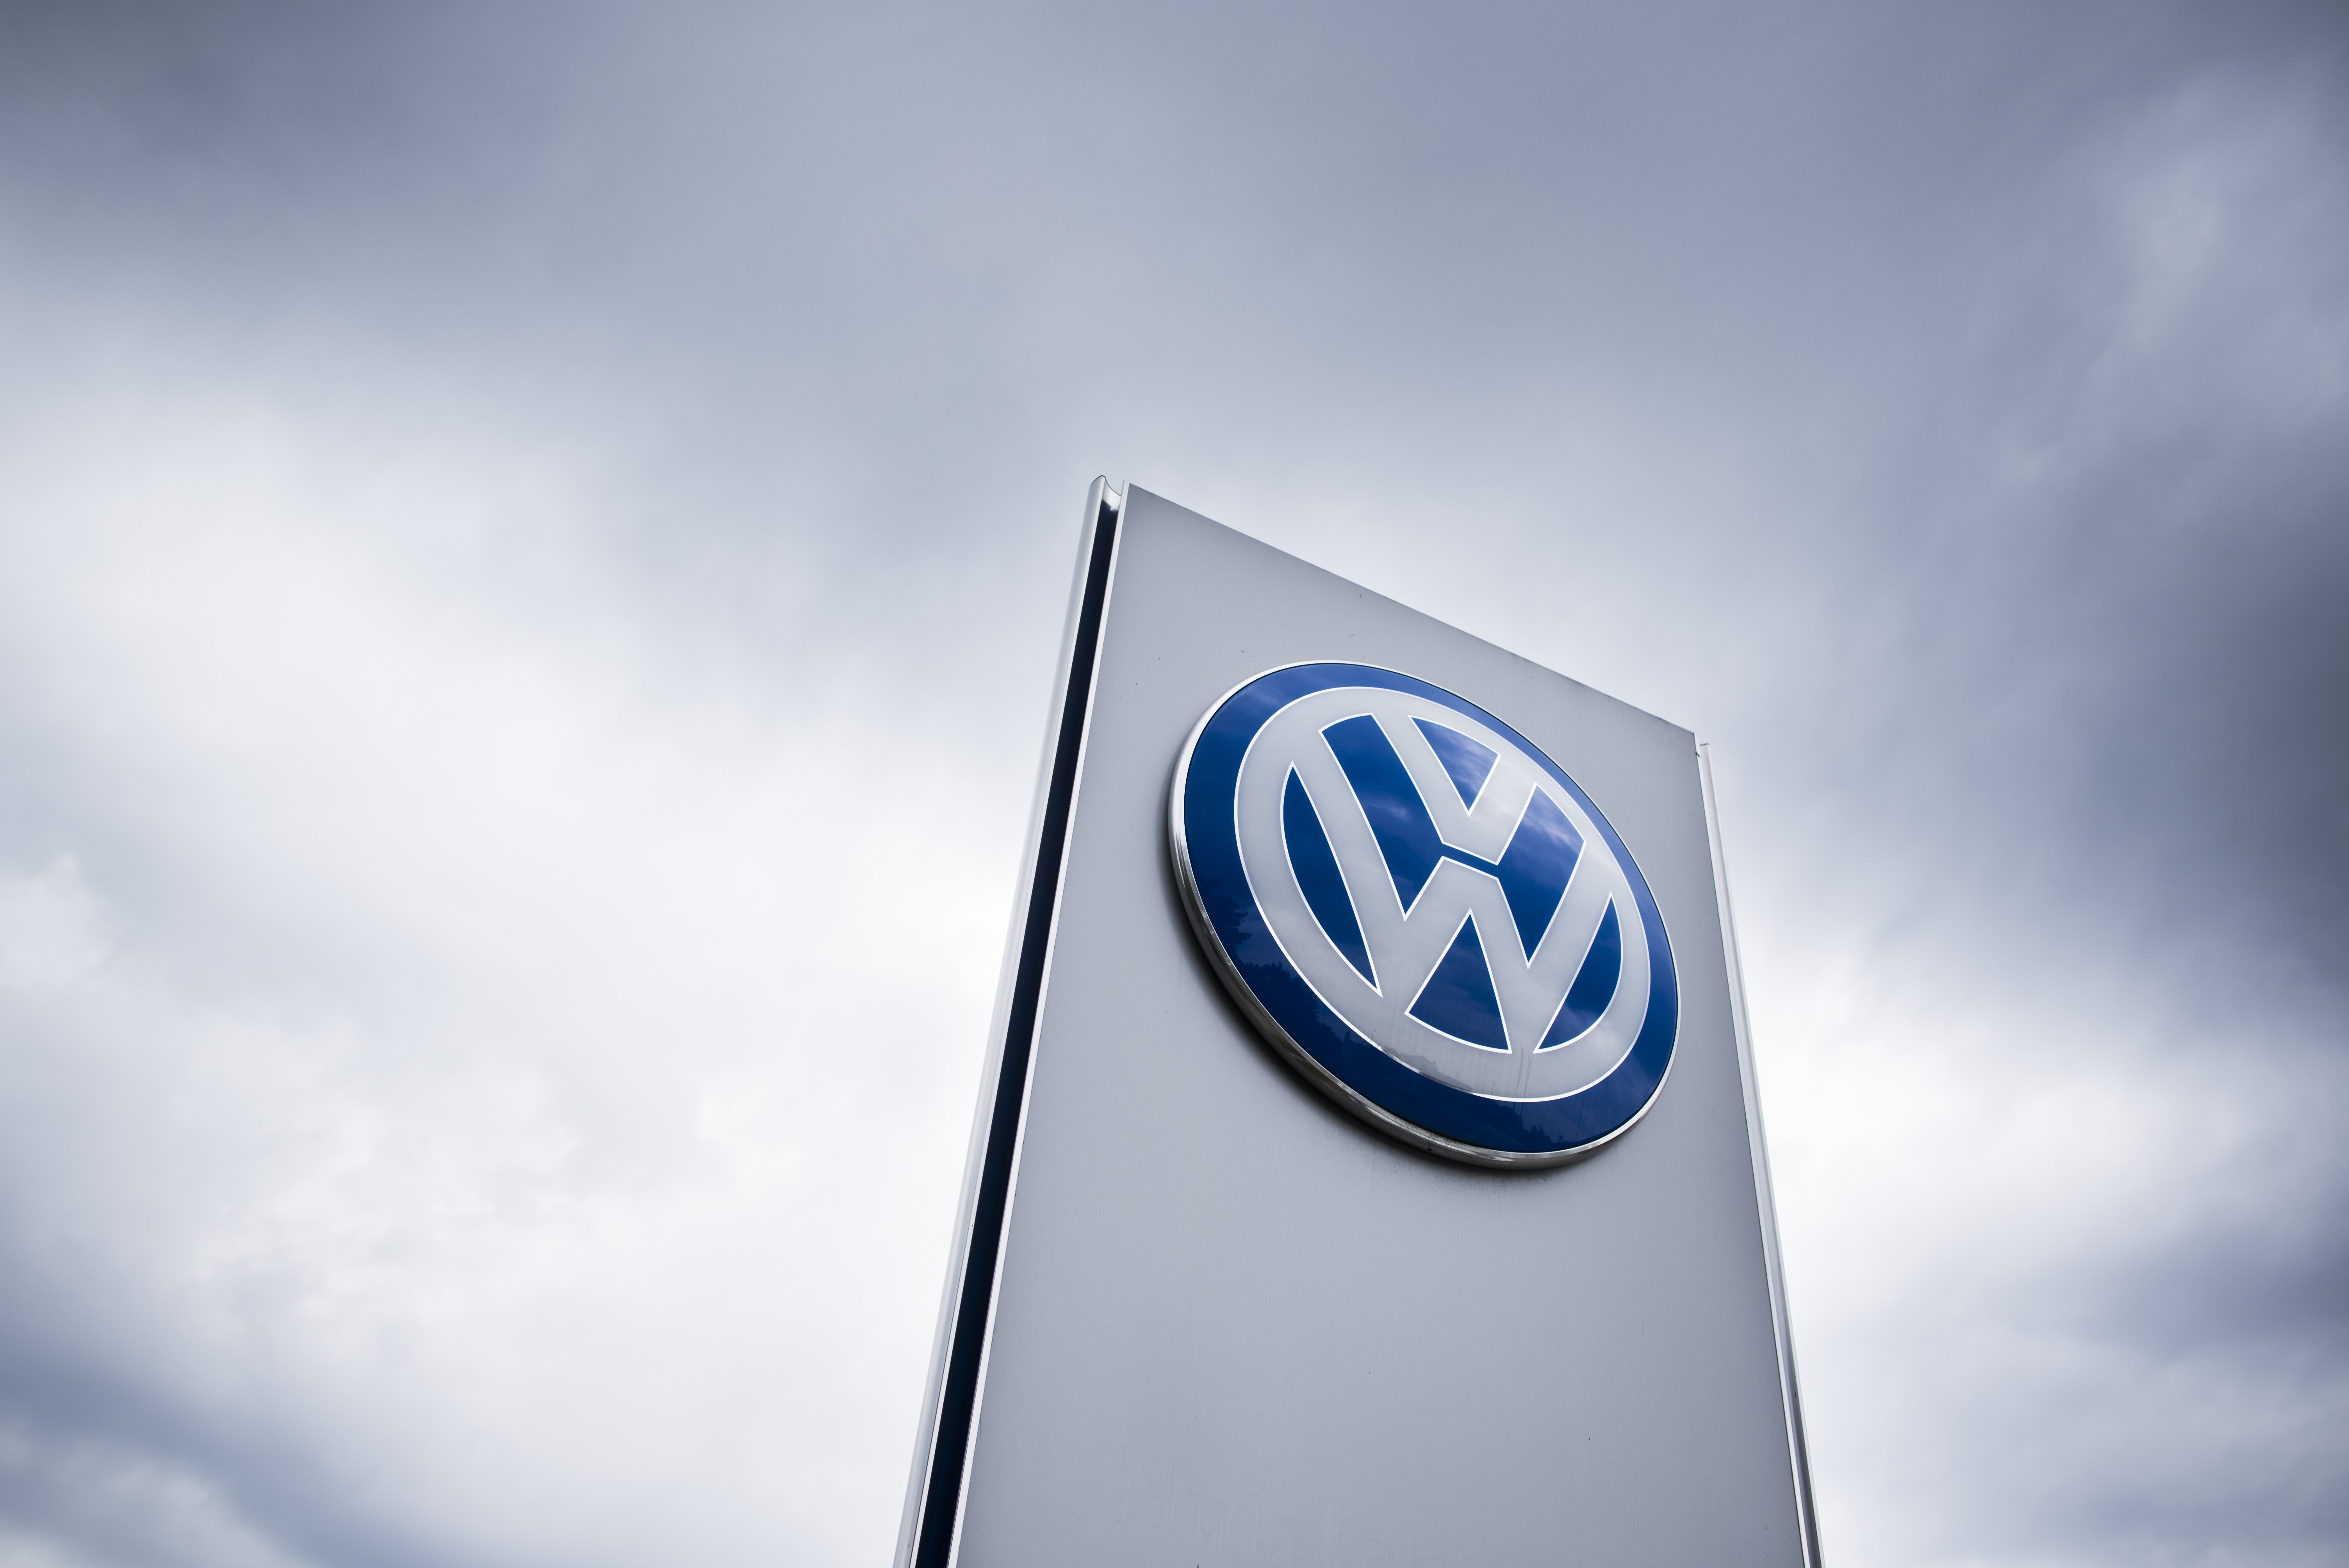 The Volkswagen logo is seen at a Volkswagen dealer in Berlin on Sept. 22, 2015.